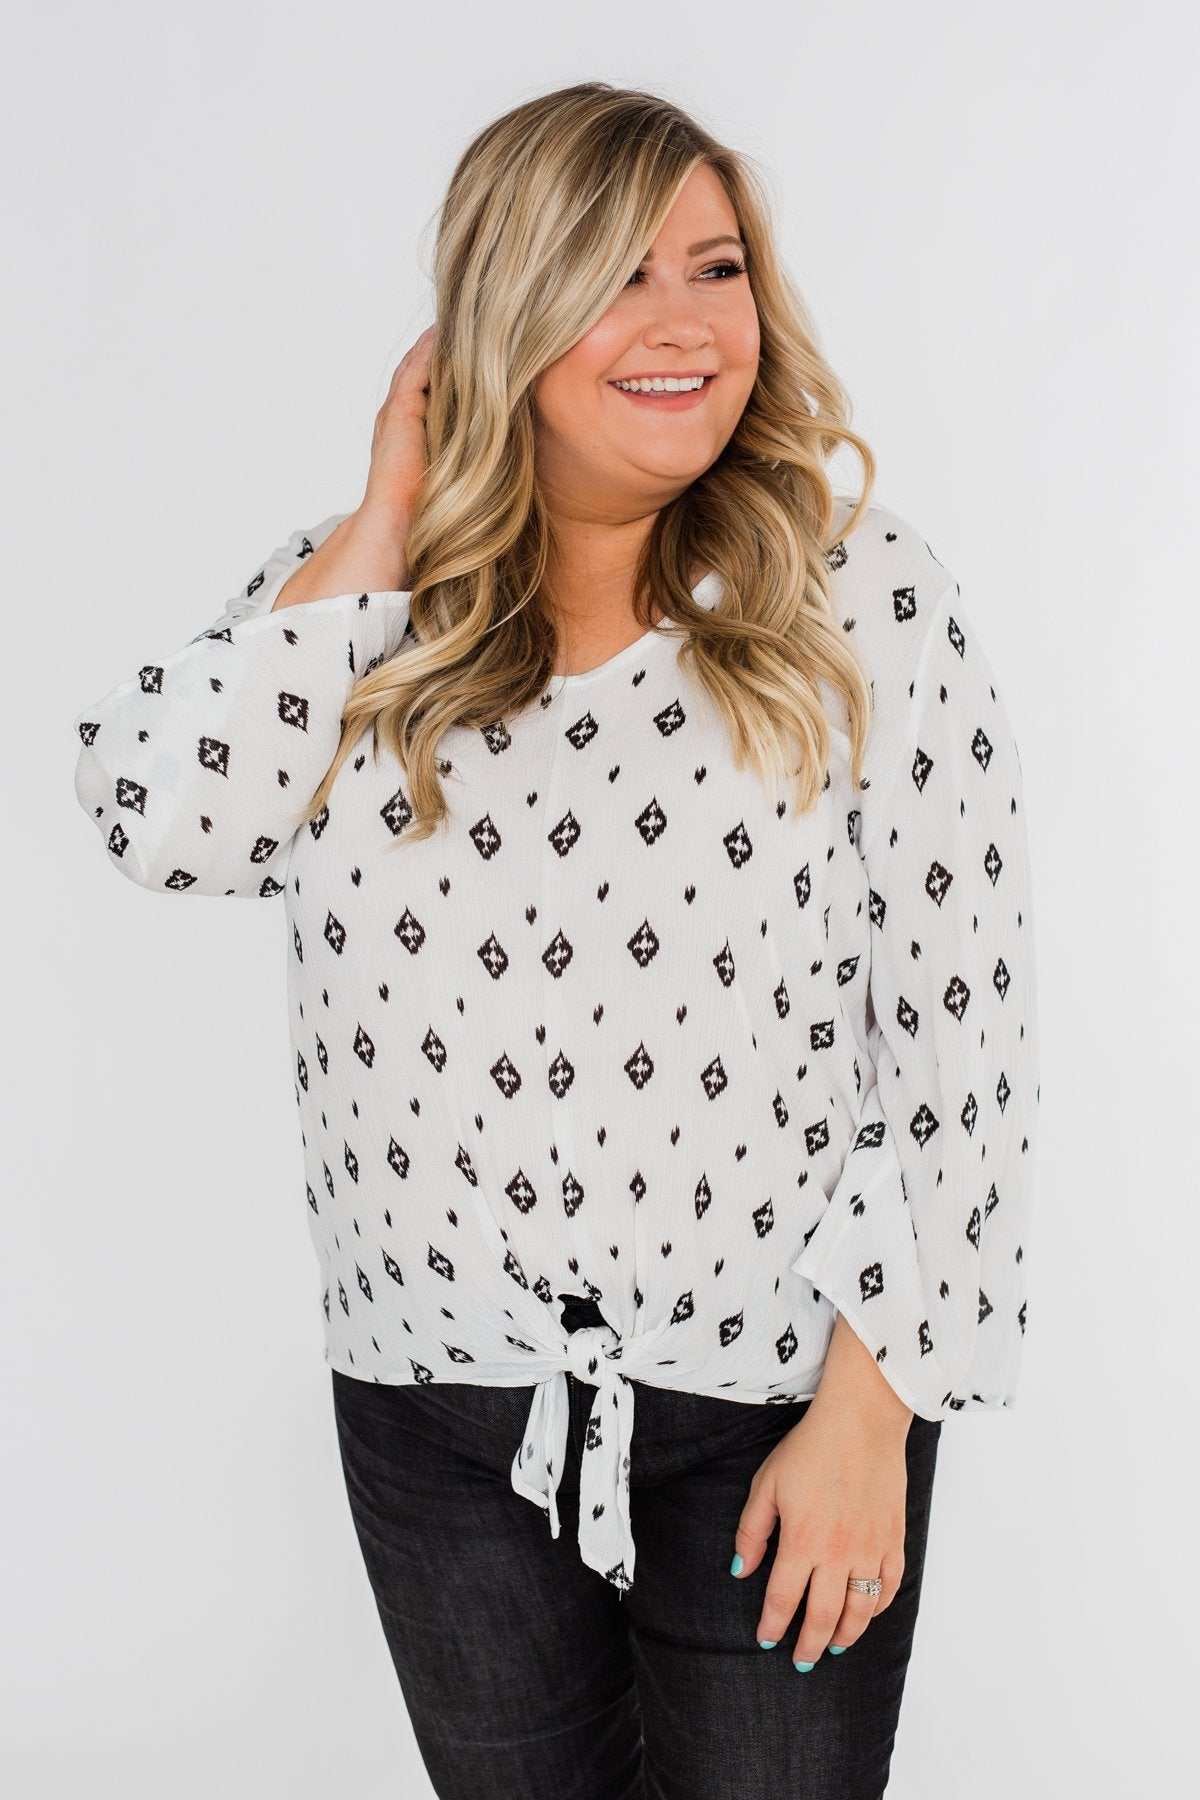 Something About You Printed Tie Blouse- White